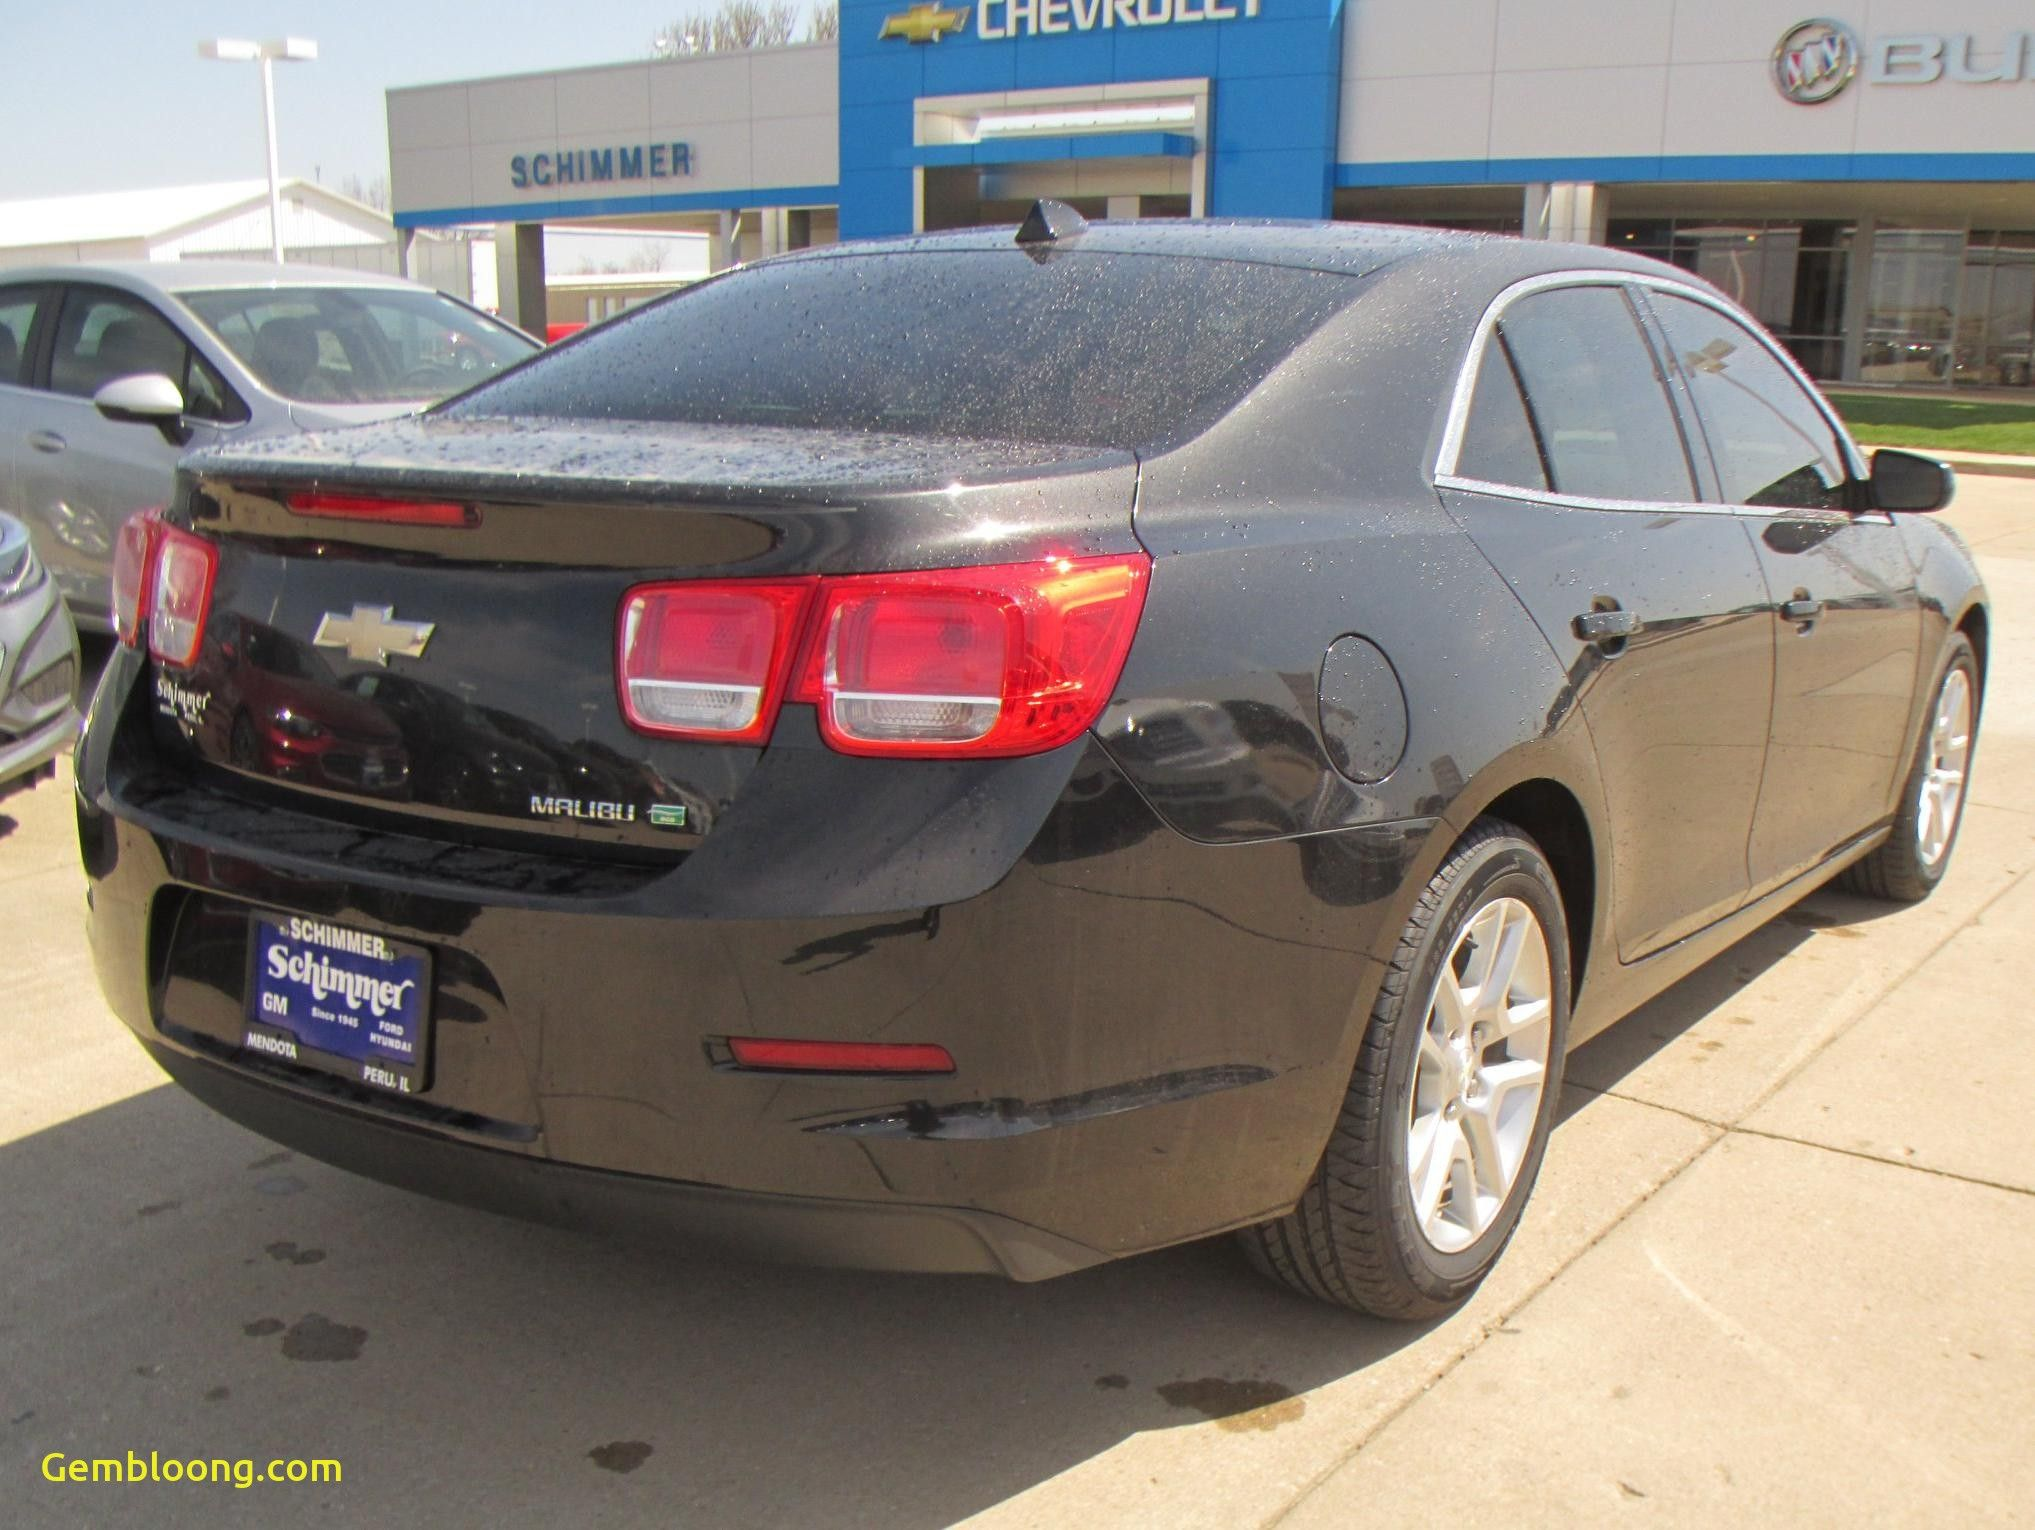 Cars for Sale Near Me Low Mileage Unique Cars for Sale Near Me Low Mileage New Unique Low Mileage Cars for ...